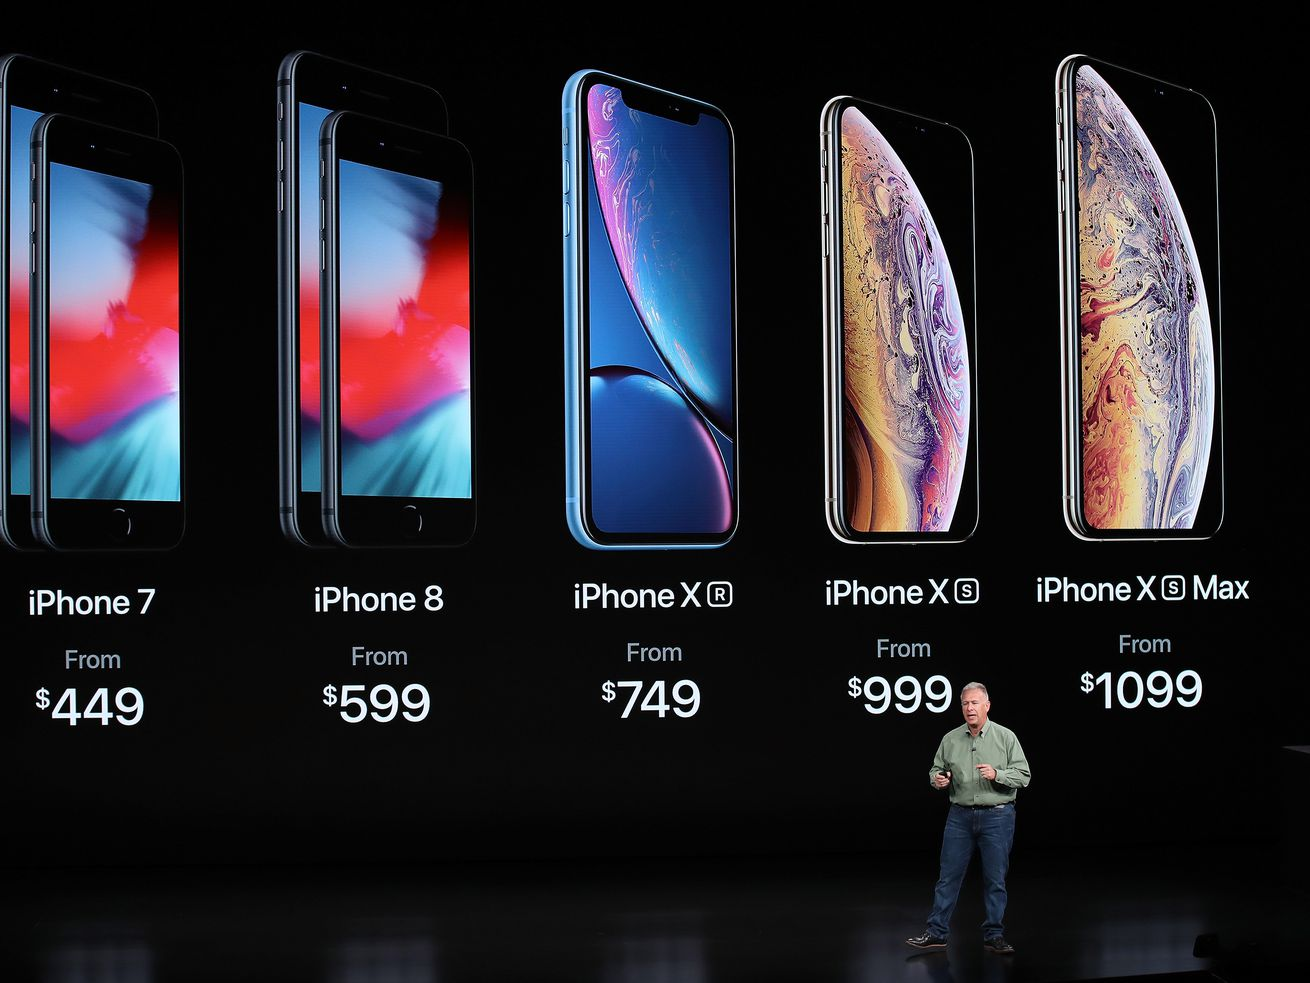 Phil Schiller, senior vice president of worldwide marketing at Apple, discusses the company's new iPhones at an event on Wednesday.